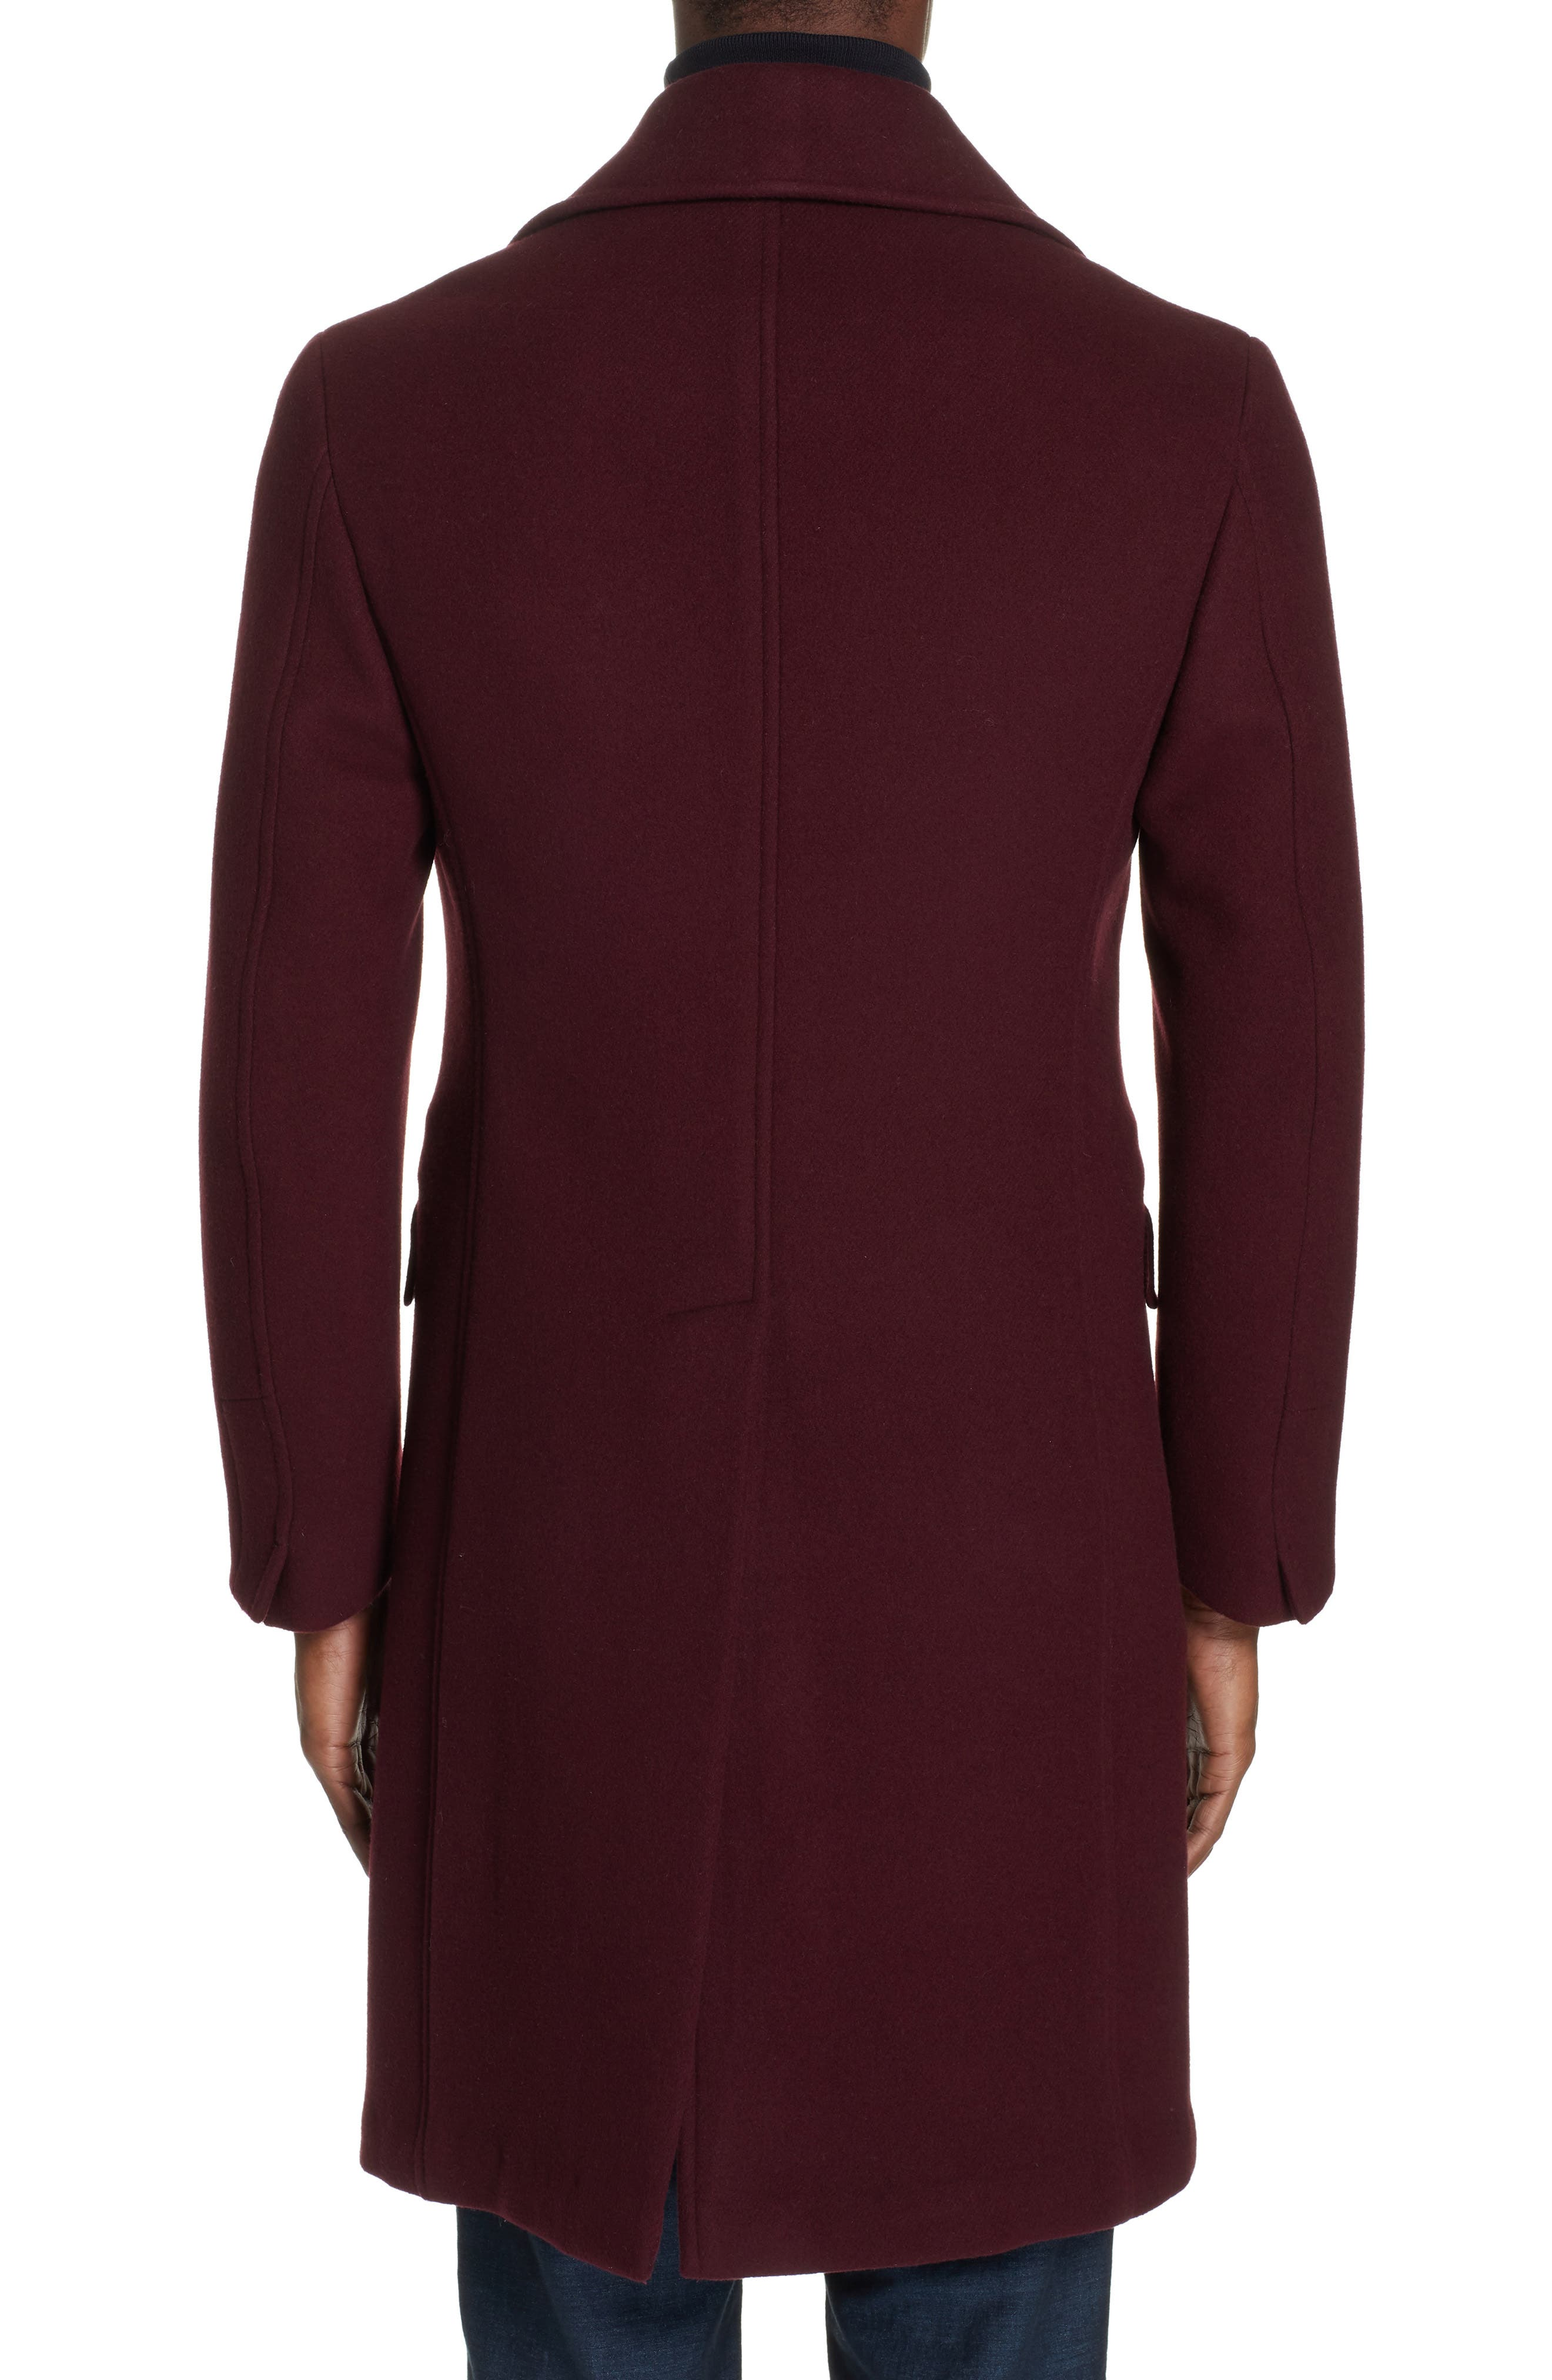 Double Breasted Wool & Cashmere Overcoat,                             Alternate thumbnail 2, color,                             930